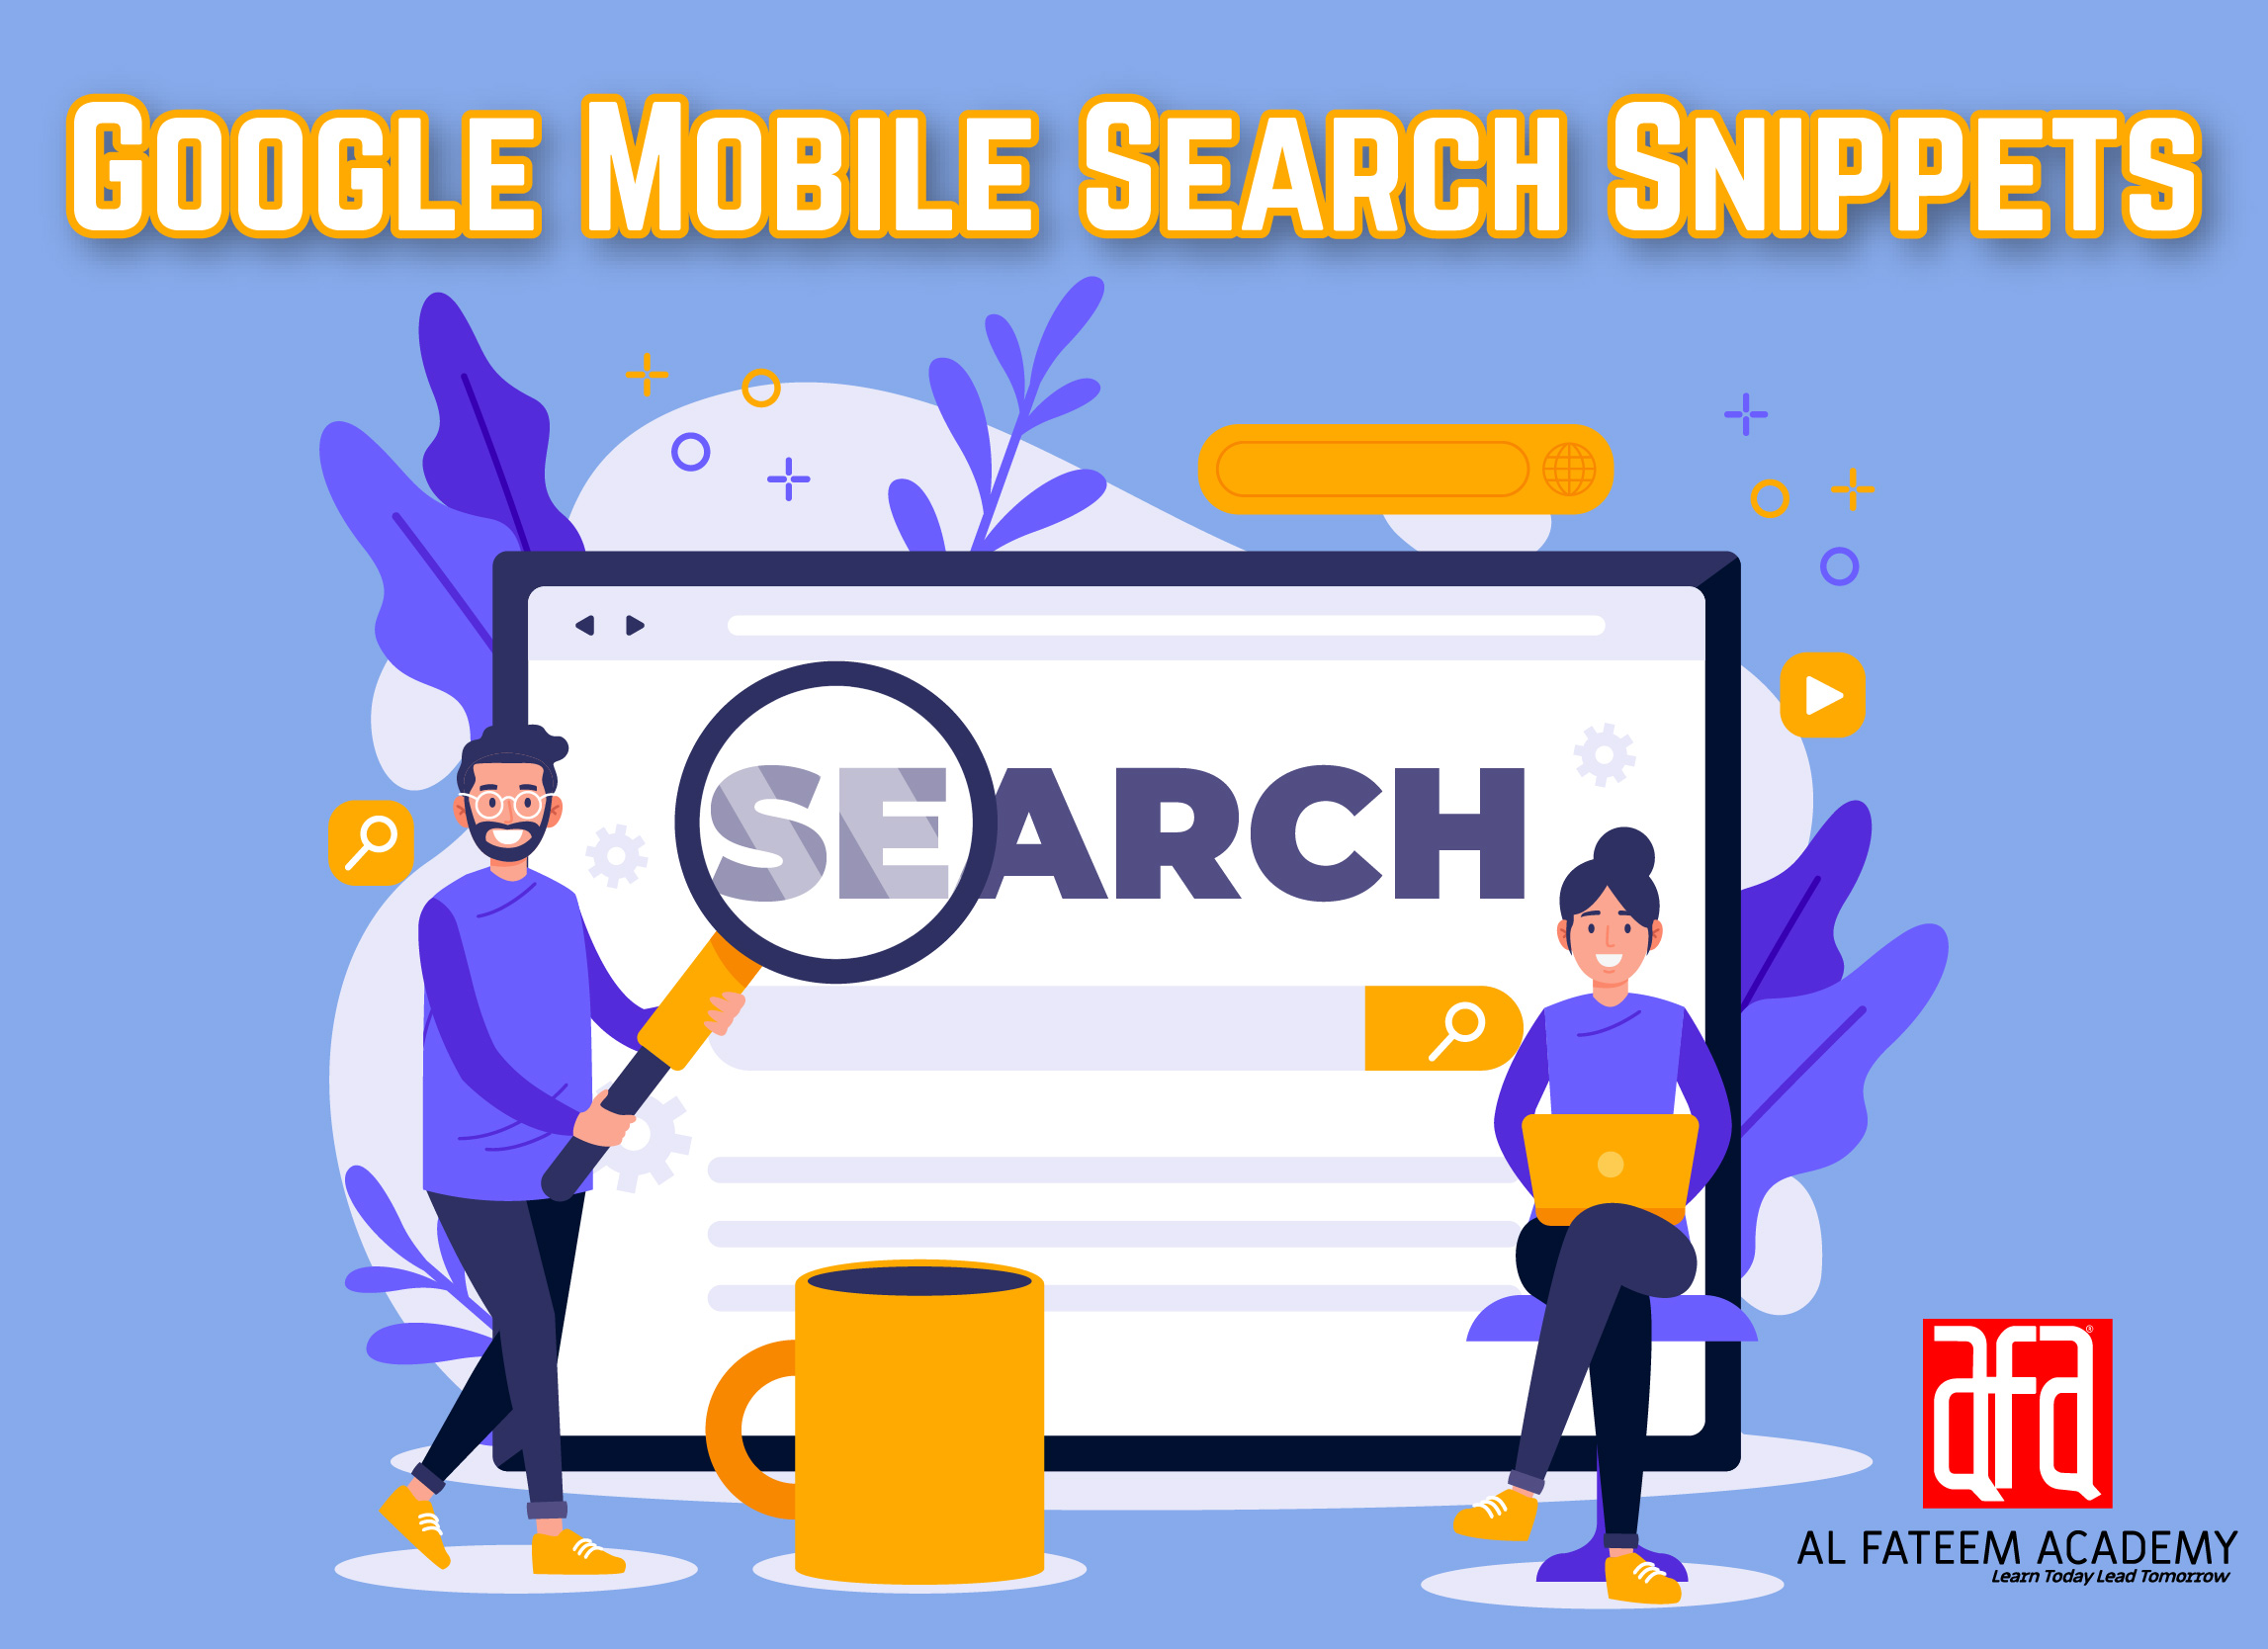 Google Mobile Search Snippets Showing Keywords Mentioned